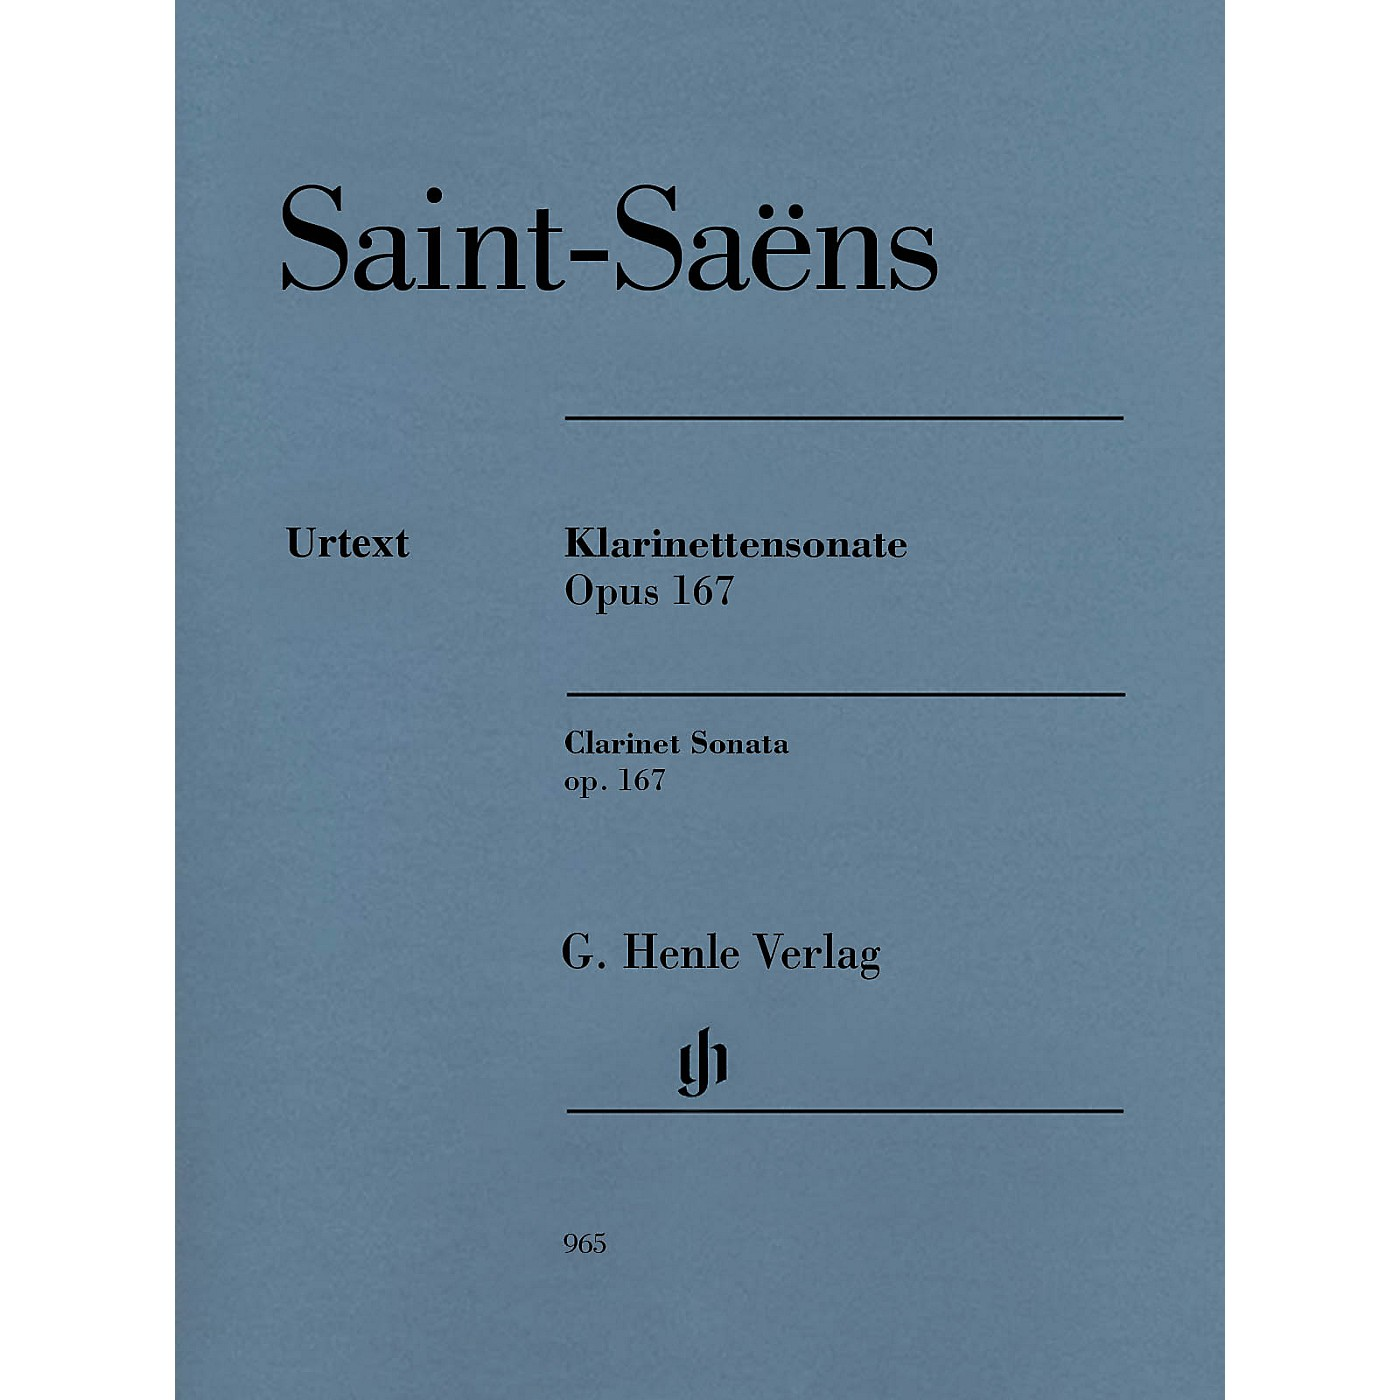 G. Henle Verlag Clarinet Sonata, Op. 167 Henle Music Folios Softcover Composed by Saint-Saens Edited by Peter Jost thumbnail